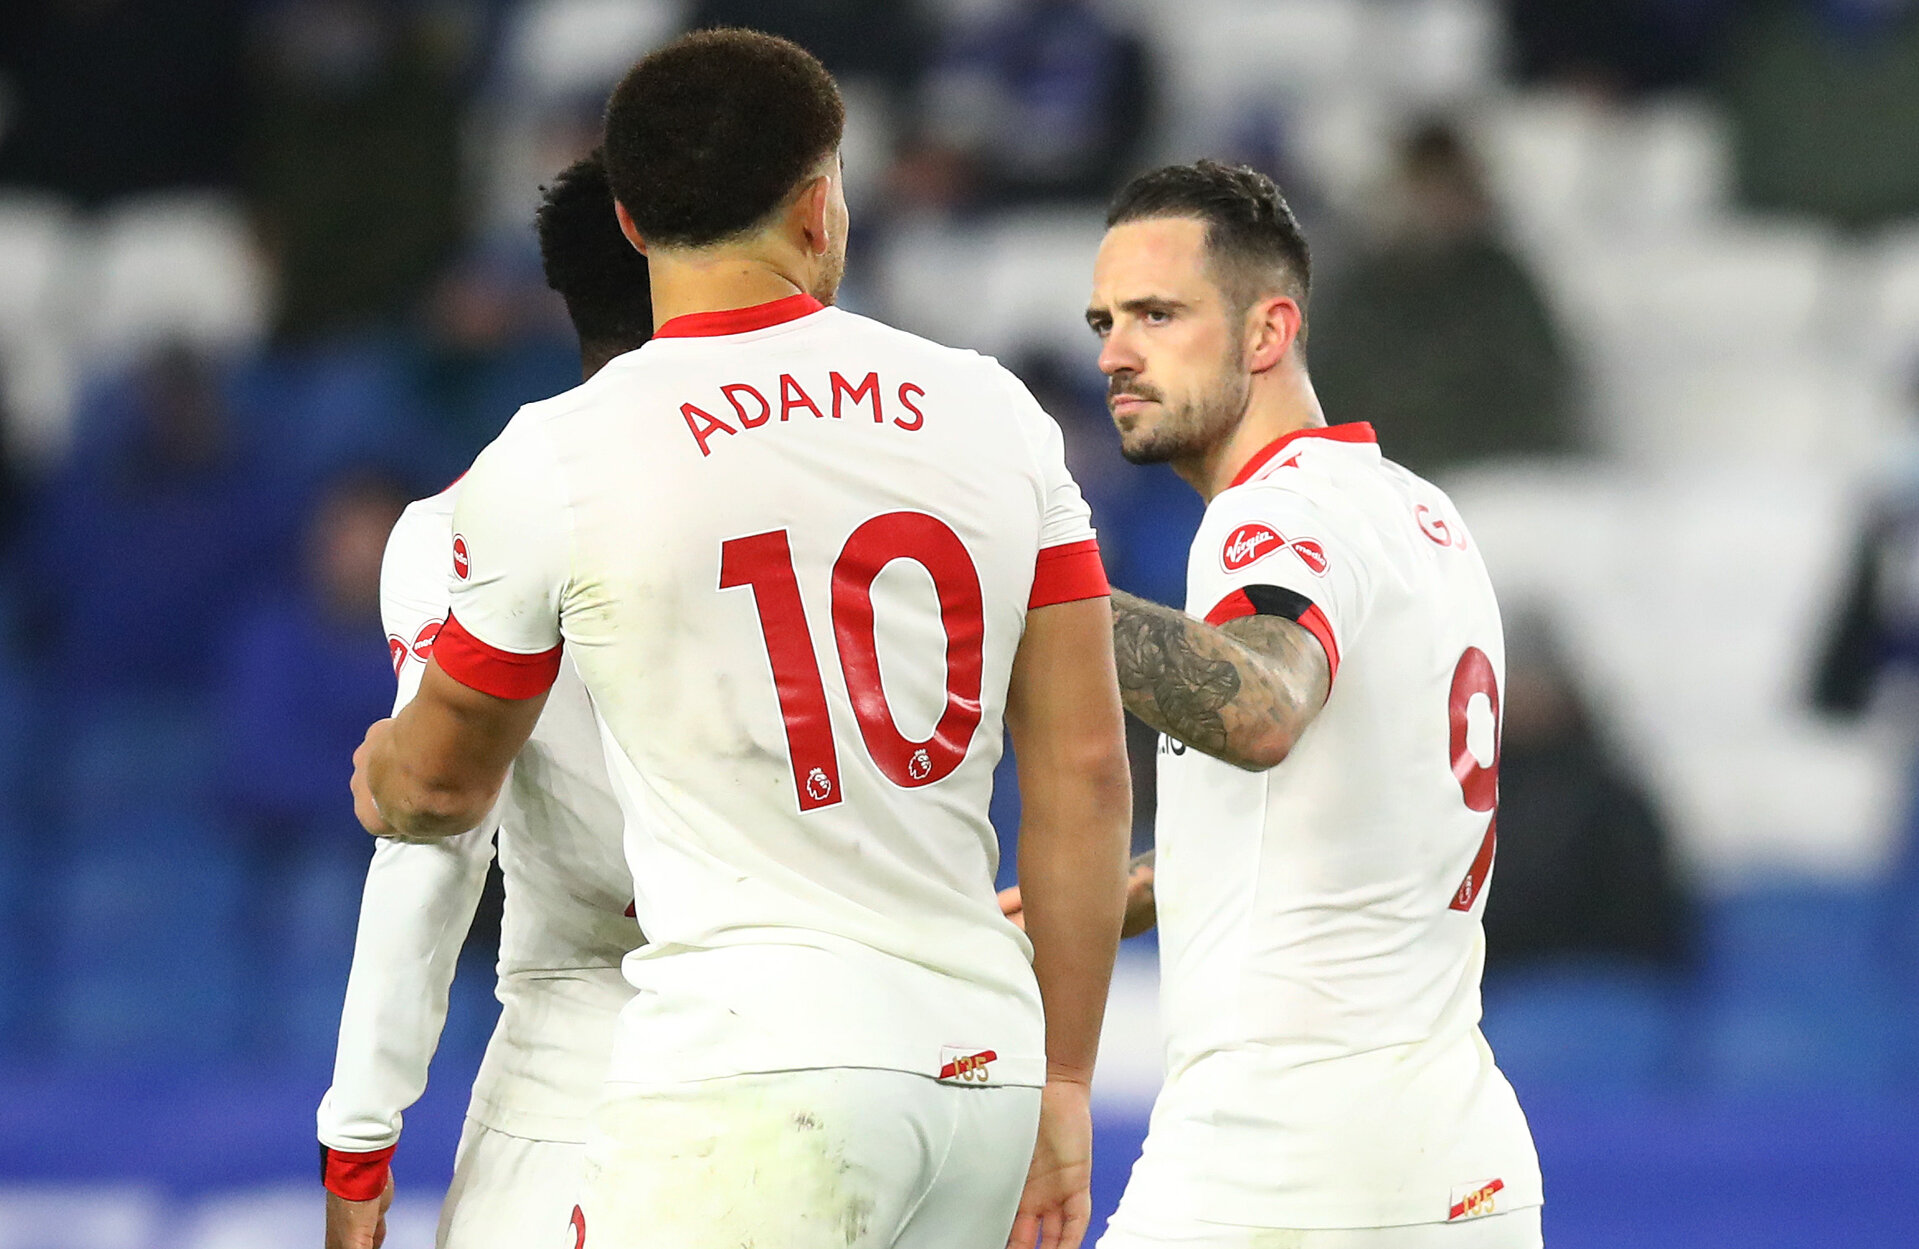 BRIGHTON, ENGLAND - DECEMBER 07: Danny Ings(centre right) of celebrates after scoring from the penalty spot during the Premier League match between Brighton & Hove Albion and Southampton at American Express Community Stadium on December 07, 2020 in Brighton, England. A limited number of fans (2000) are welcomed back to stadiums to watch elite football across England. This was following easing of restrictions on spectators in tiers one and two areas only. (Photo by Matt Watson/Southampton FC via Getty Images)